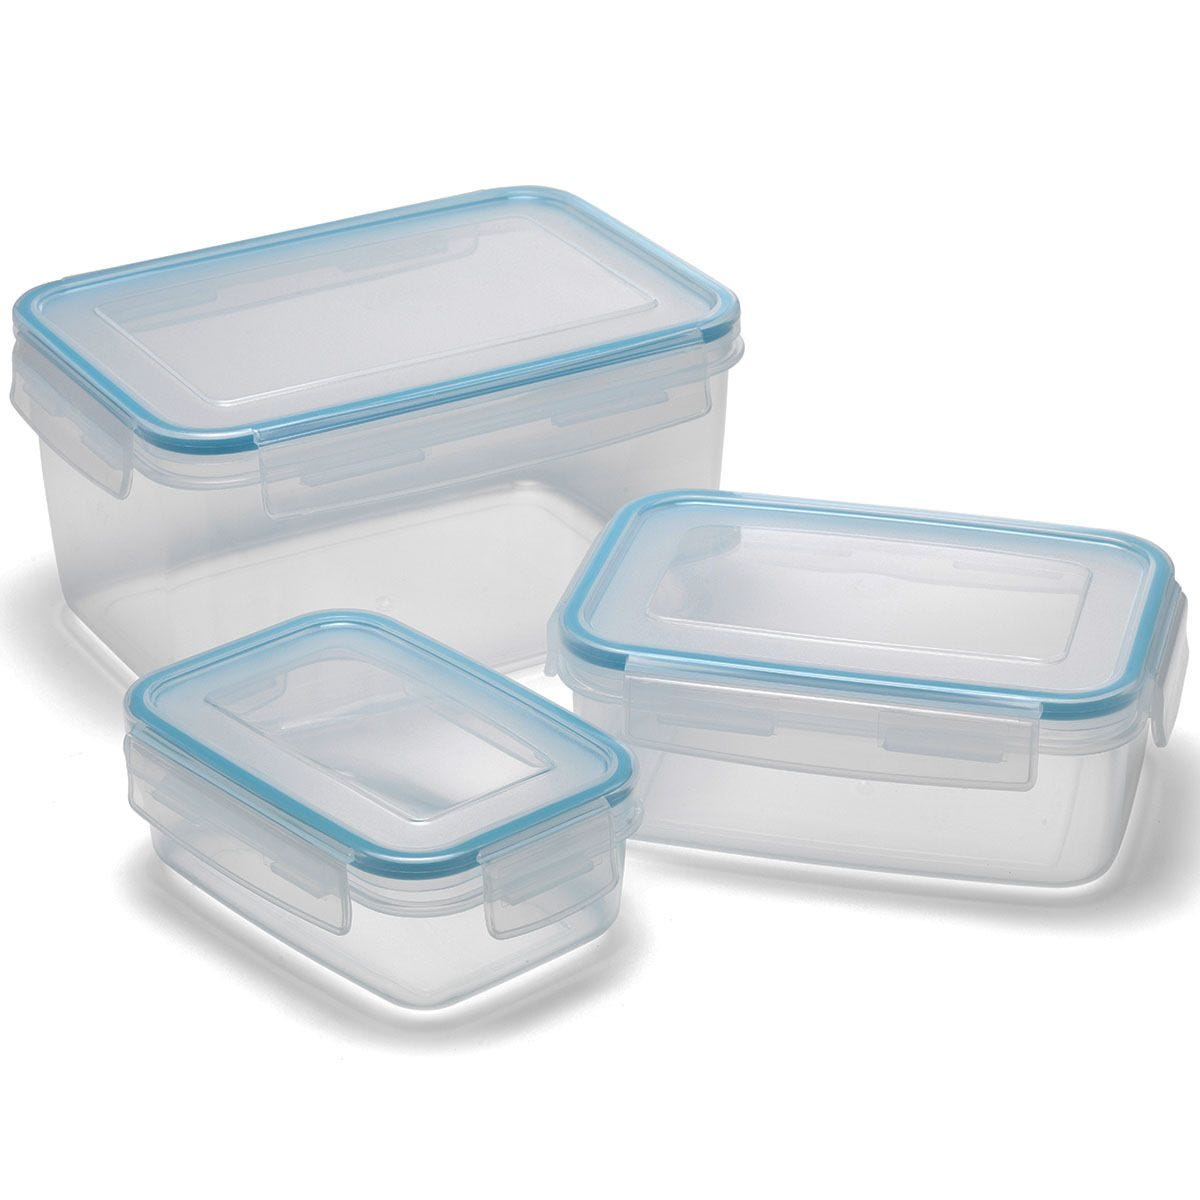 Addis Clip & Close Rectangular 3 Piece Food Storage Set